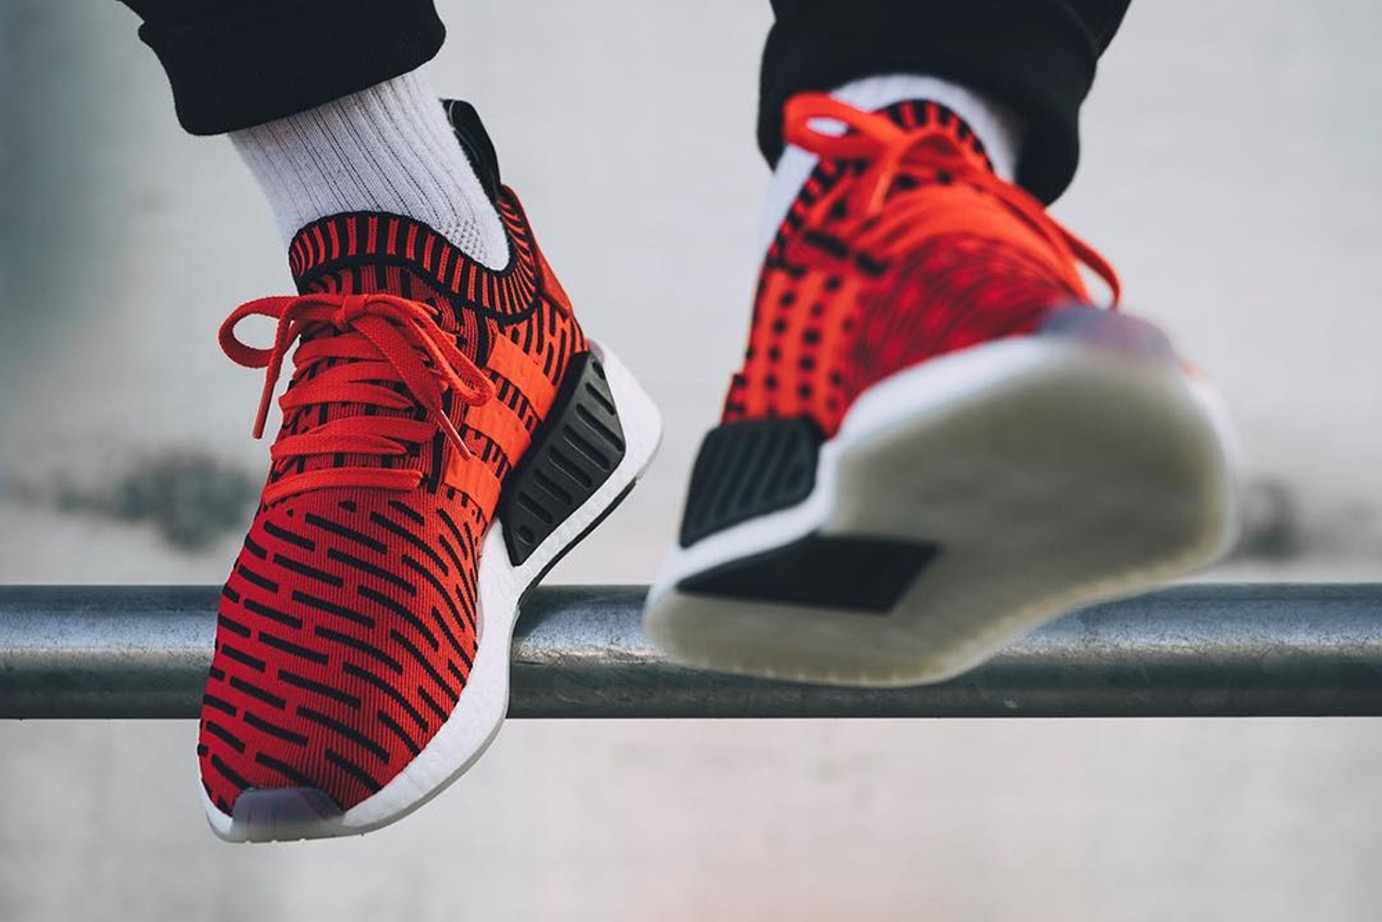 Adidas Nmd R2 Striped Core Red Black Young California